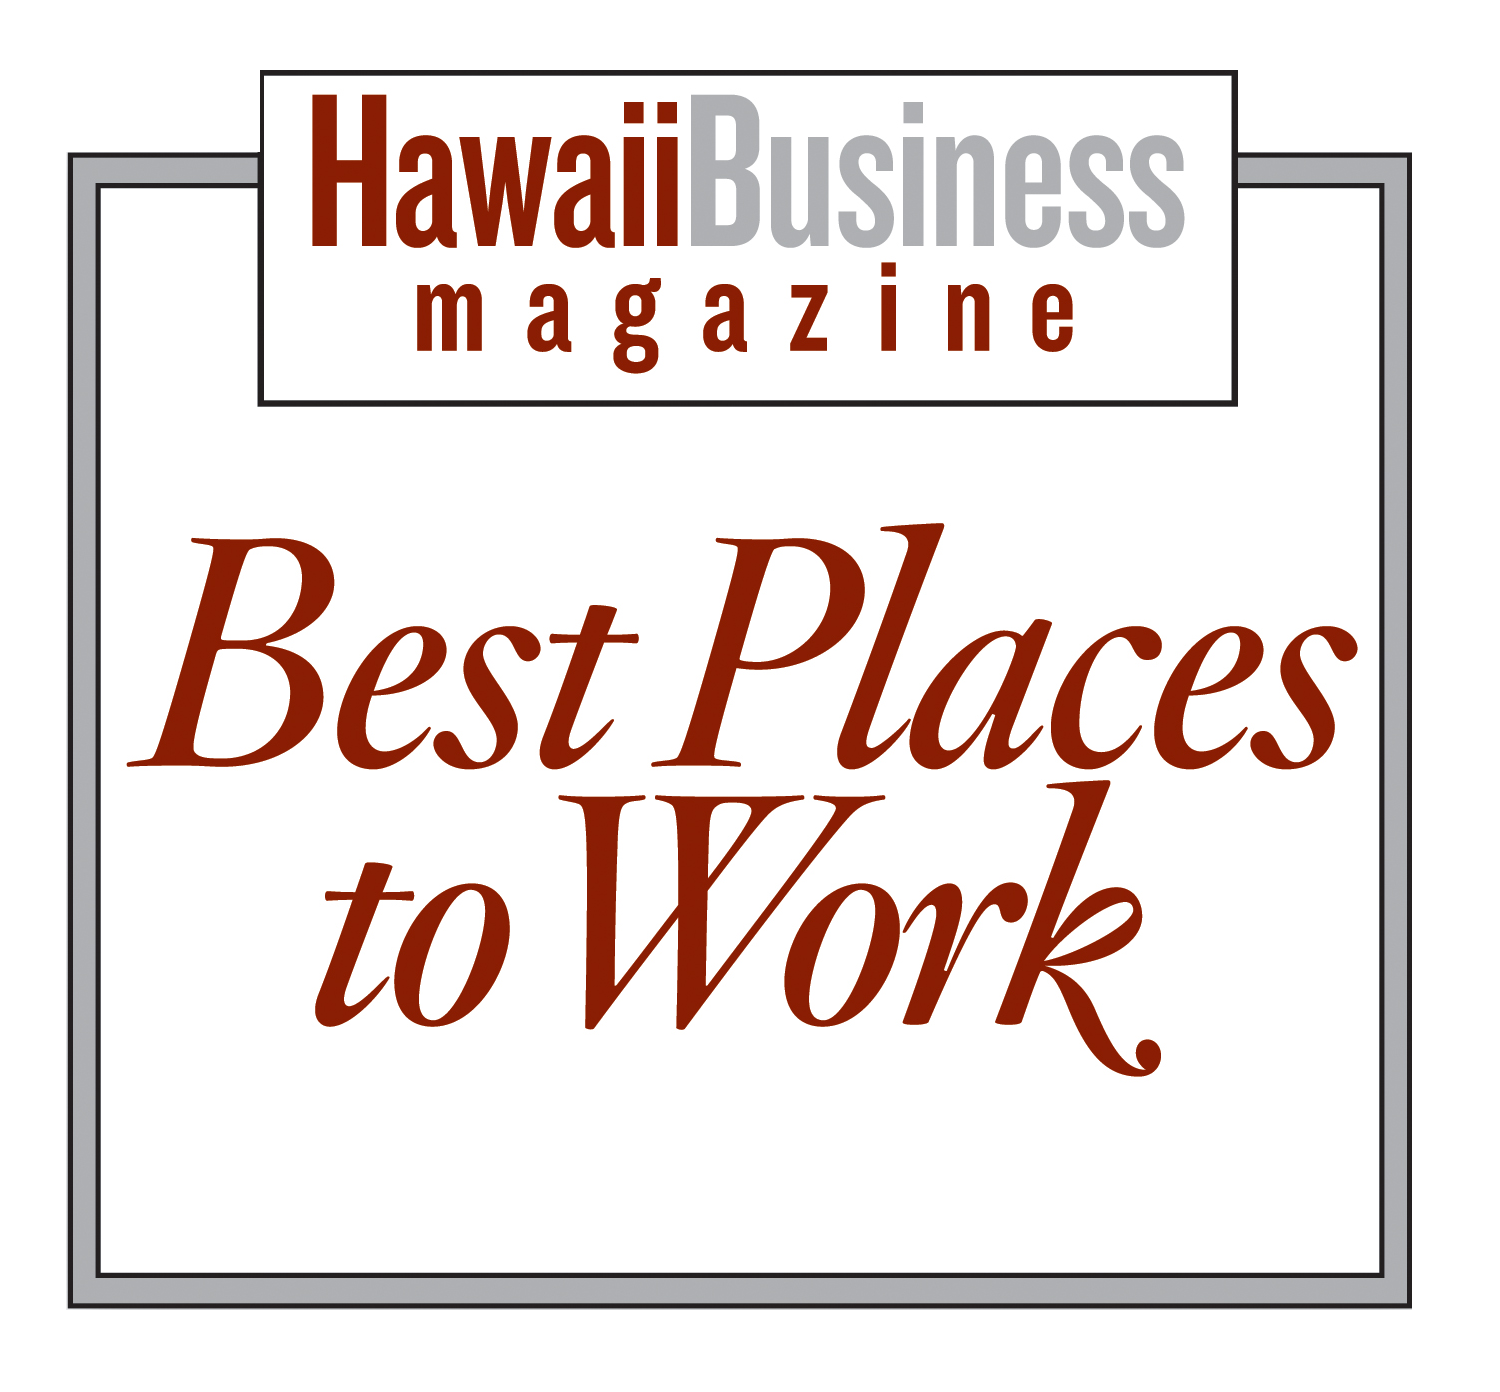 One of Hawaii's best places to work